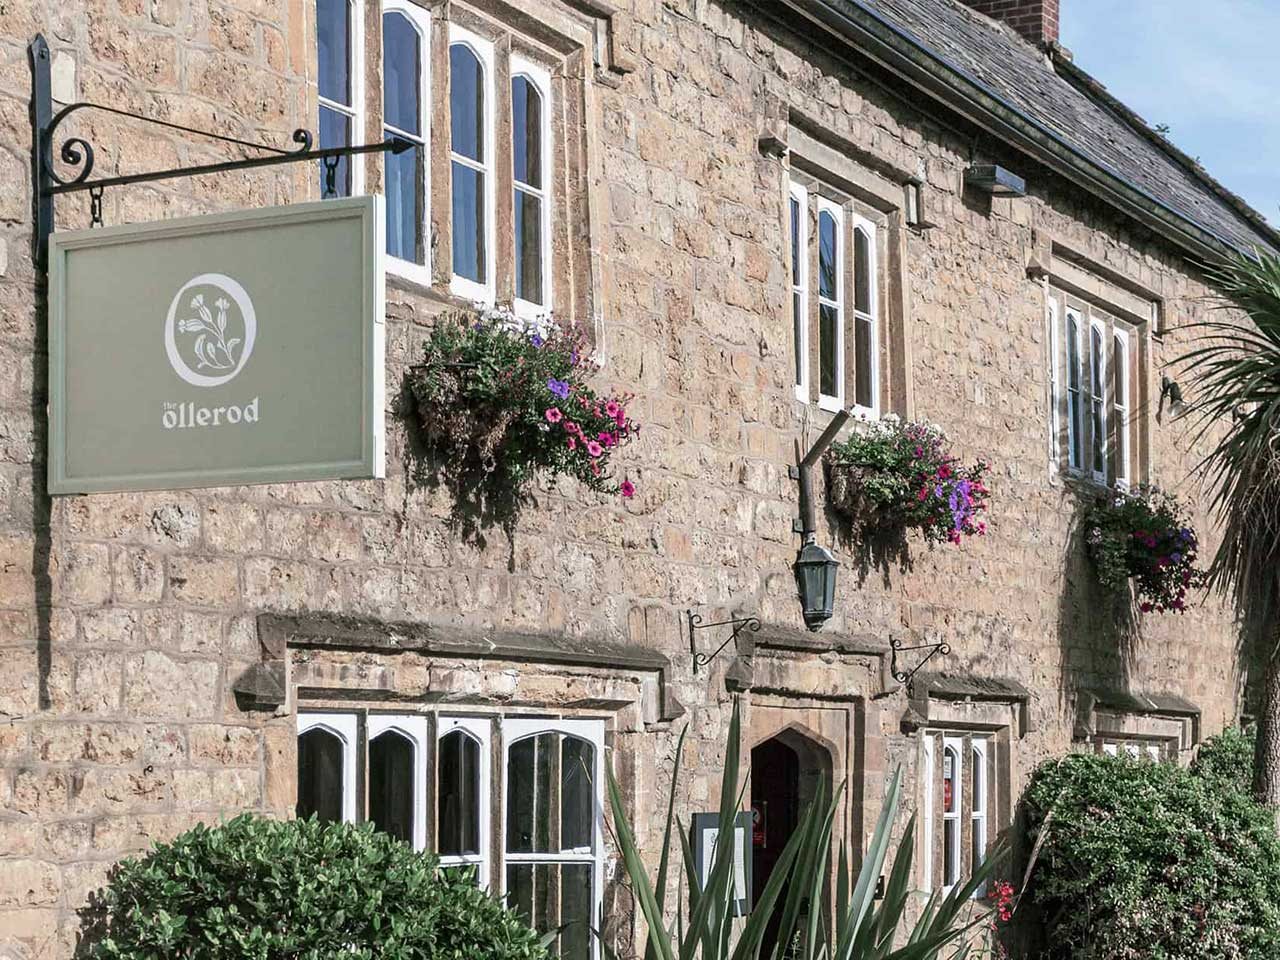 The Ollerod in Beaminster, Mapperton Weddings accommodation provider